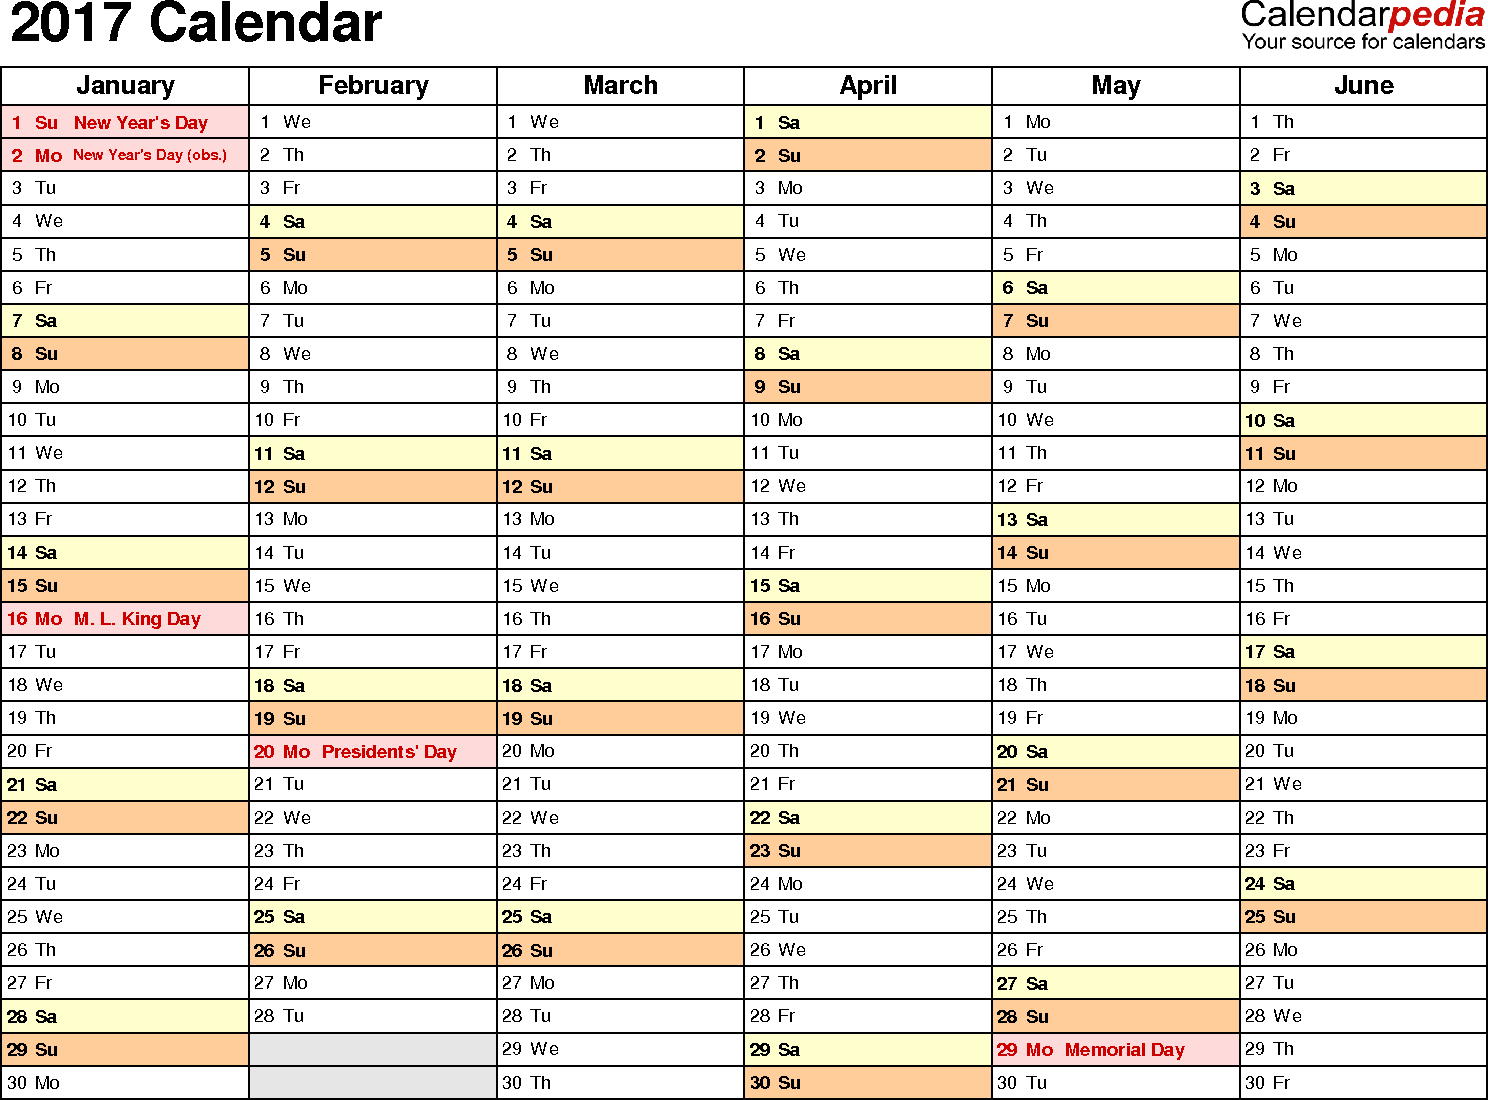 Ediblewildsus  Winsome  Calendar  Download  Free Printable Excel Templates Xls With Interesting Template   Calendar For Excel Months Horizontally  Pages Landscape Orientation With Charming Data Bar Excel Also How To Calculate A Mortgage Payment In Excel In Addition How Do I Combine Two Columns In Excel And Repair Excel  As Well As Microsoft Excel  Complete Additionally Excel User Guide From Calendarpediacom With Ediblewildsus  Interesting  Calendar  Download  Free Printable Excel Templates Xls With Charming Template   Calendar For Excel Months Horizontally  Pages Landscape Orientation And Winsome Data Bar Excel Also How To Calculate A Mortgage Payment In Excel In Addition How Do I Combine Two Columns In Excel From Calendarpediacom